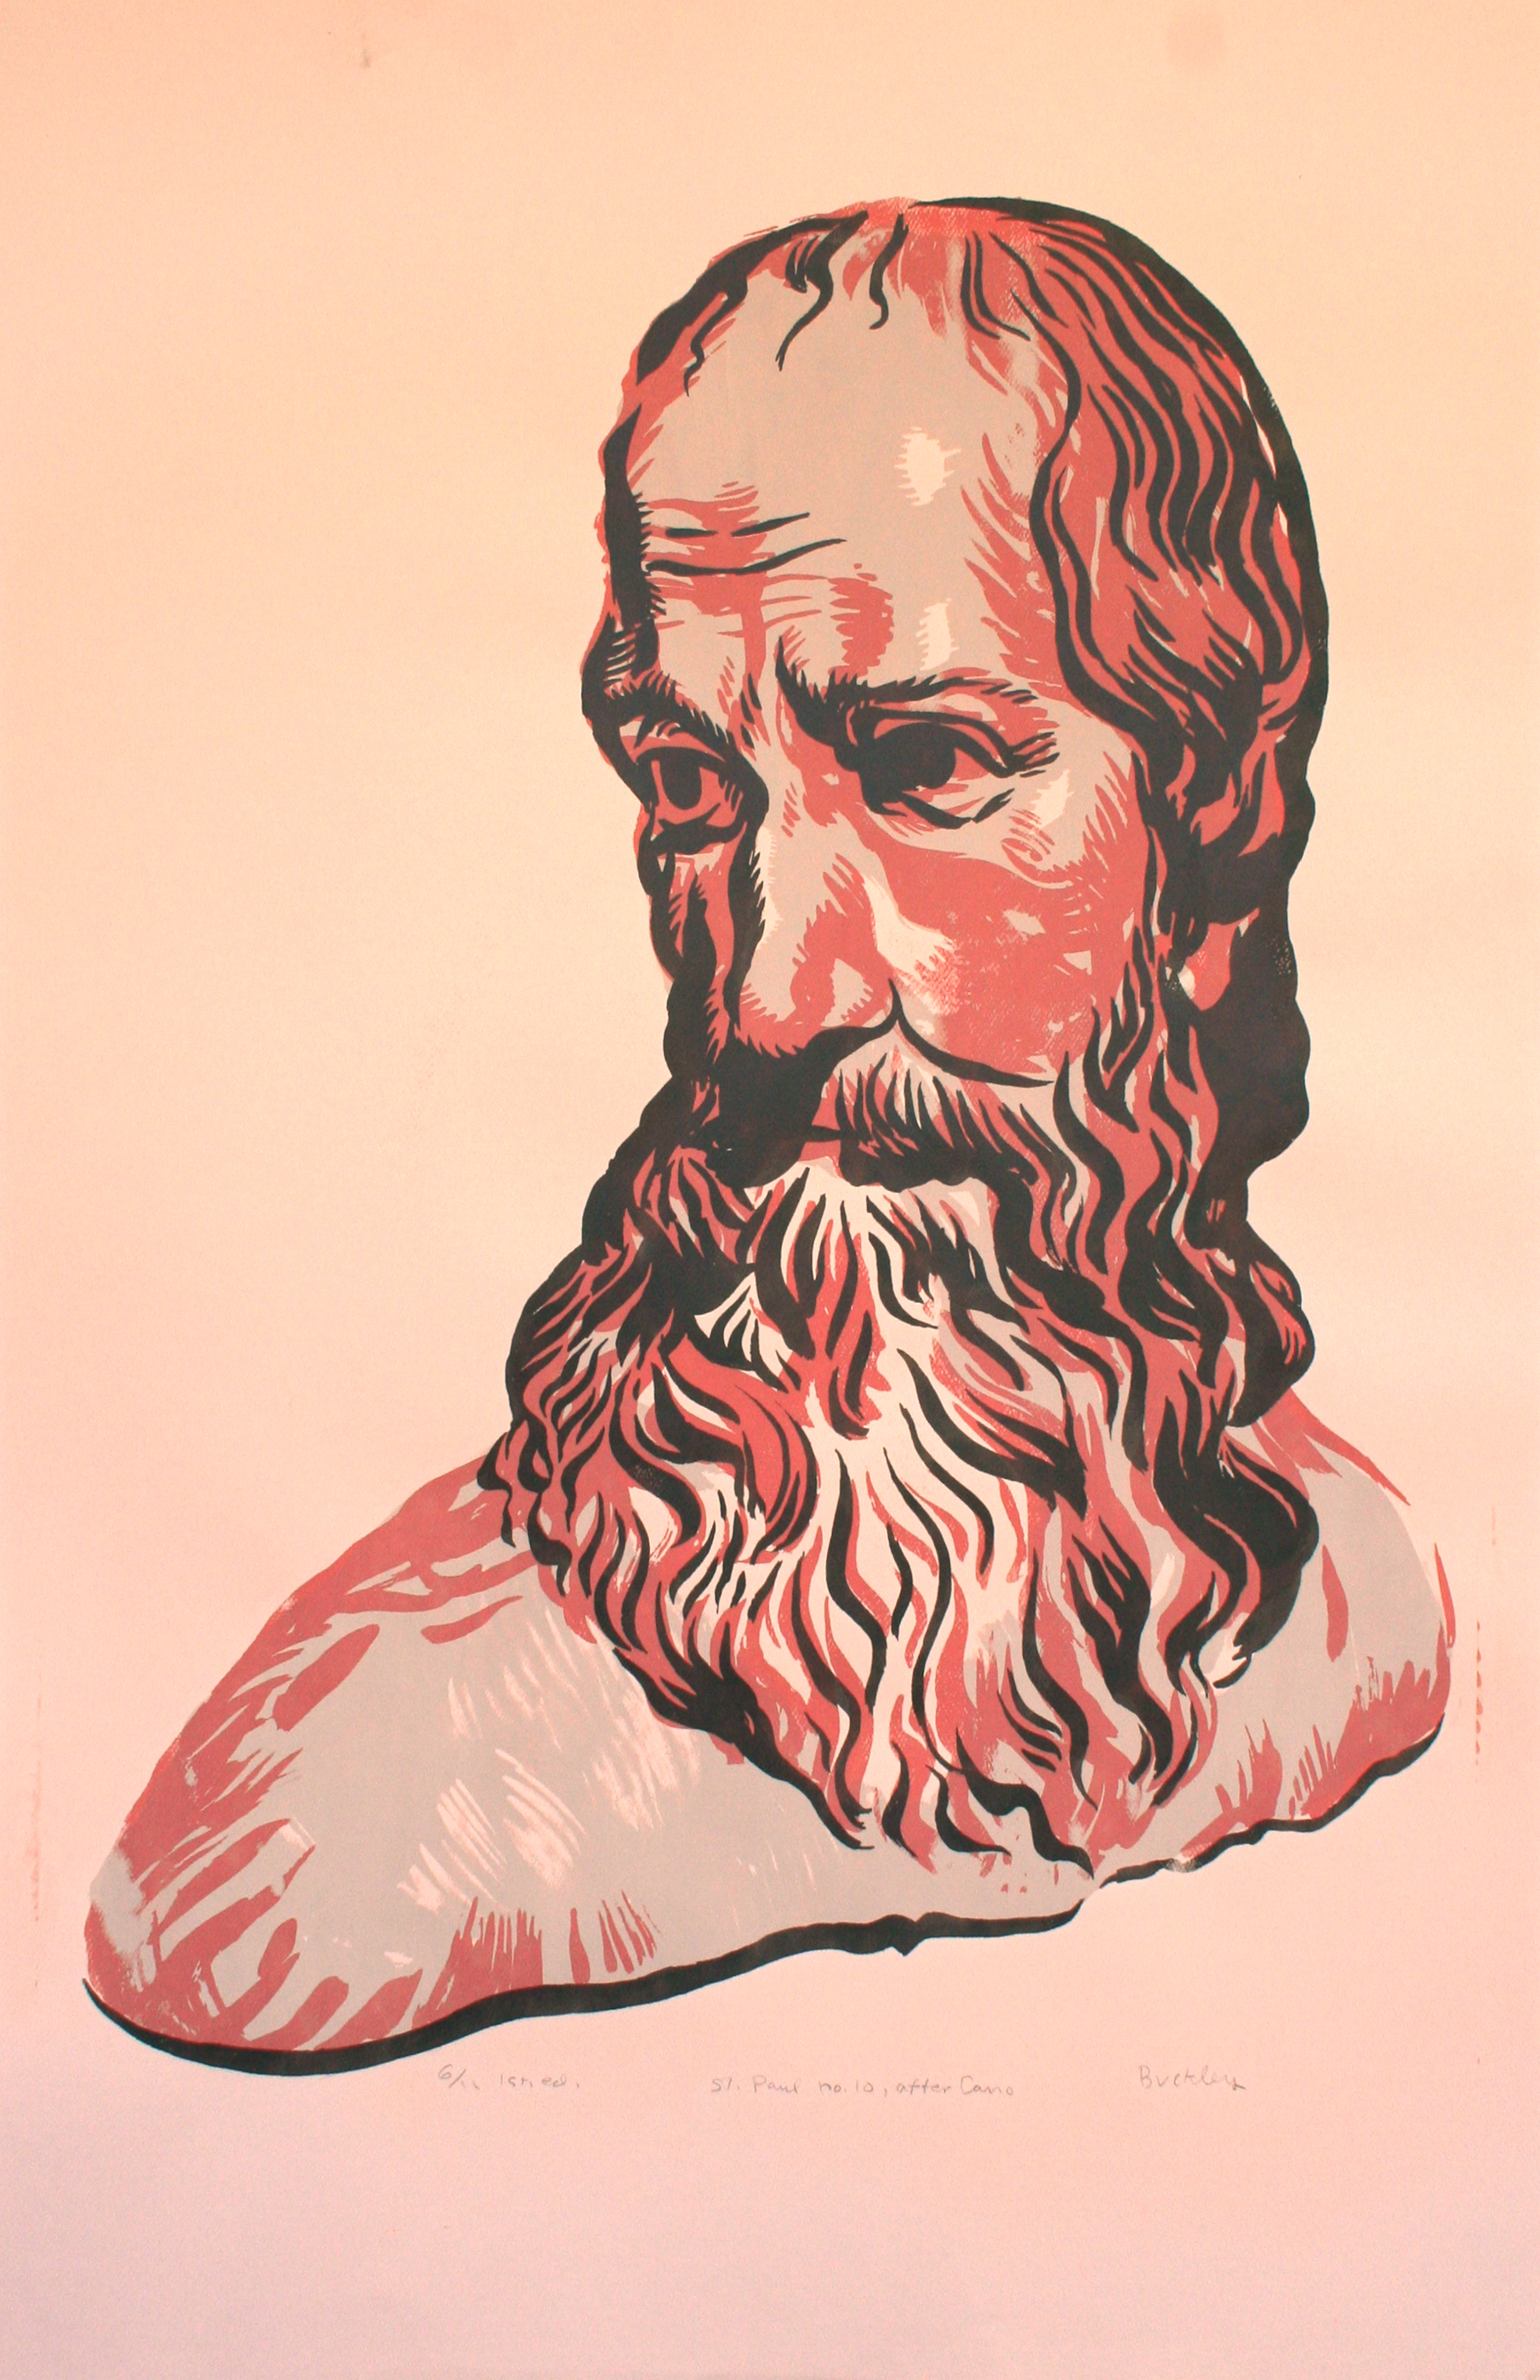 St. Paul no. 10, after Cano. 1st ed. 6/11 Image 70 x 50 cm, screen print on pink cover stock